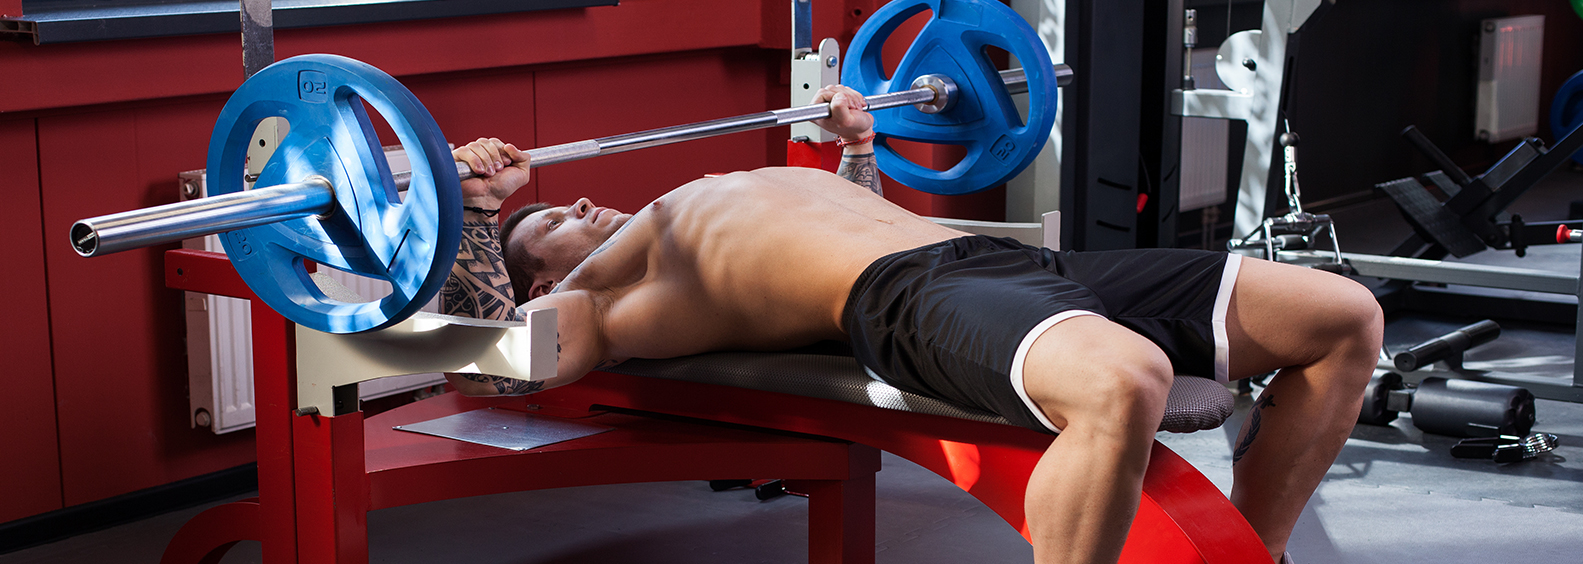 45 Minute Chest Workout